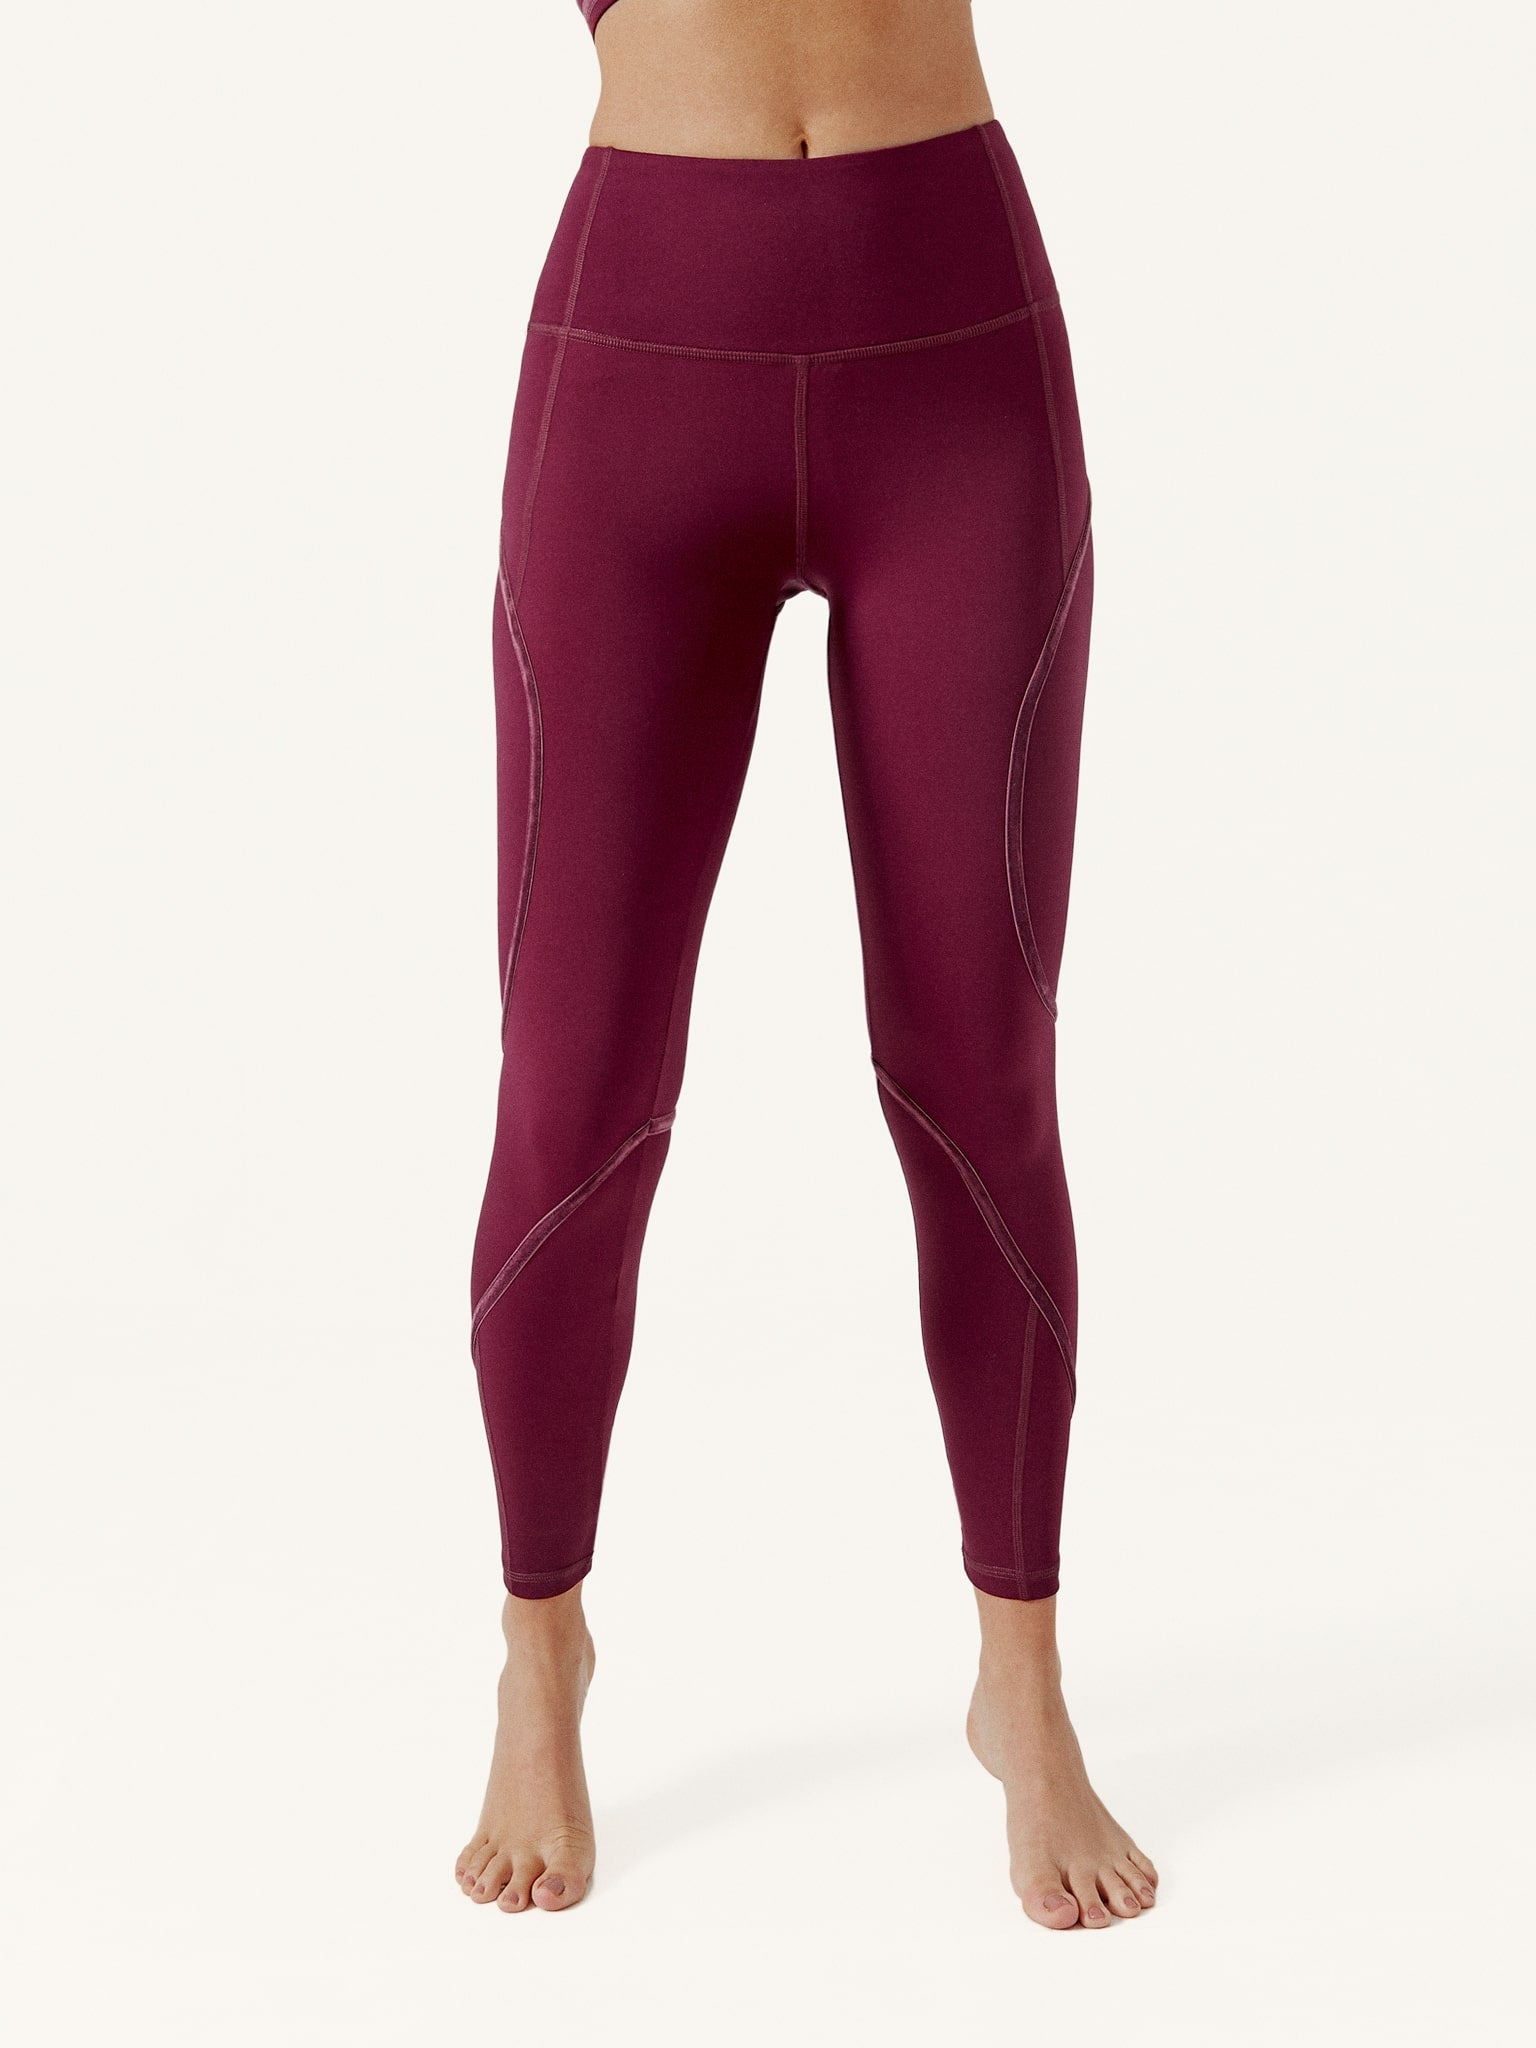 Legging Tape Burgundy